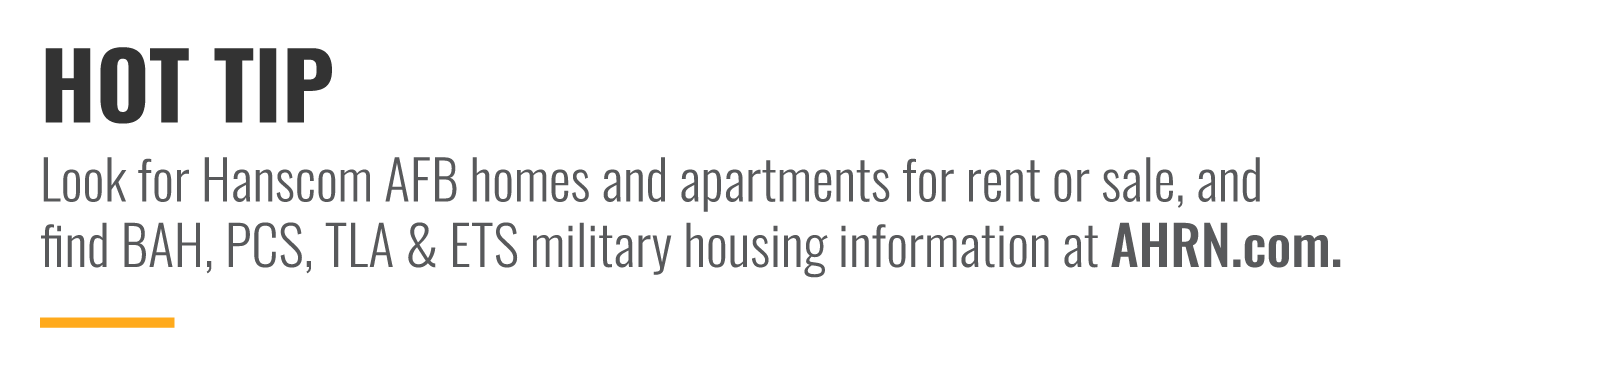 Look for homes and apartments for rent or sale on AHRN.com.